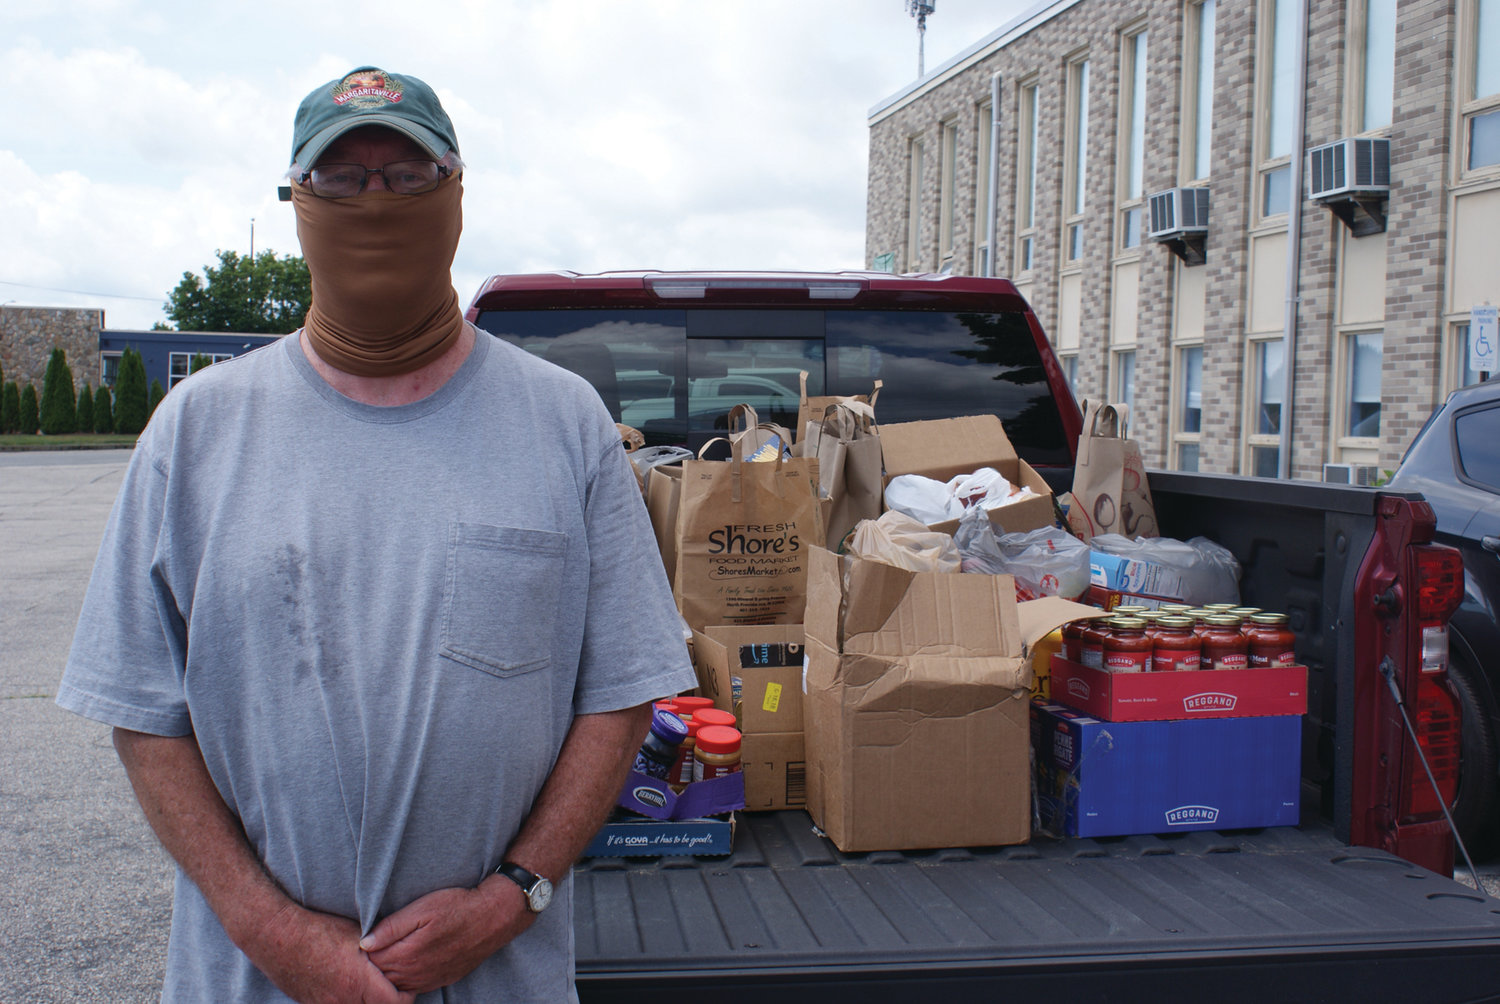 VOLUNTEER EFFORT: Bob Cole is just about ready to make his first trip to bring the collected food donations to the food pantry during Woodridge's Church drop-off food collection.